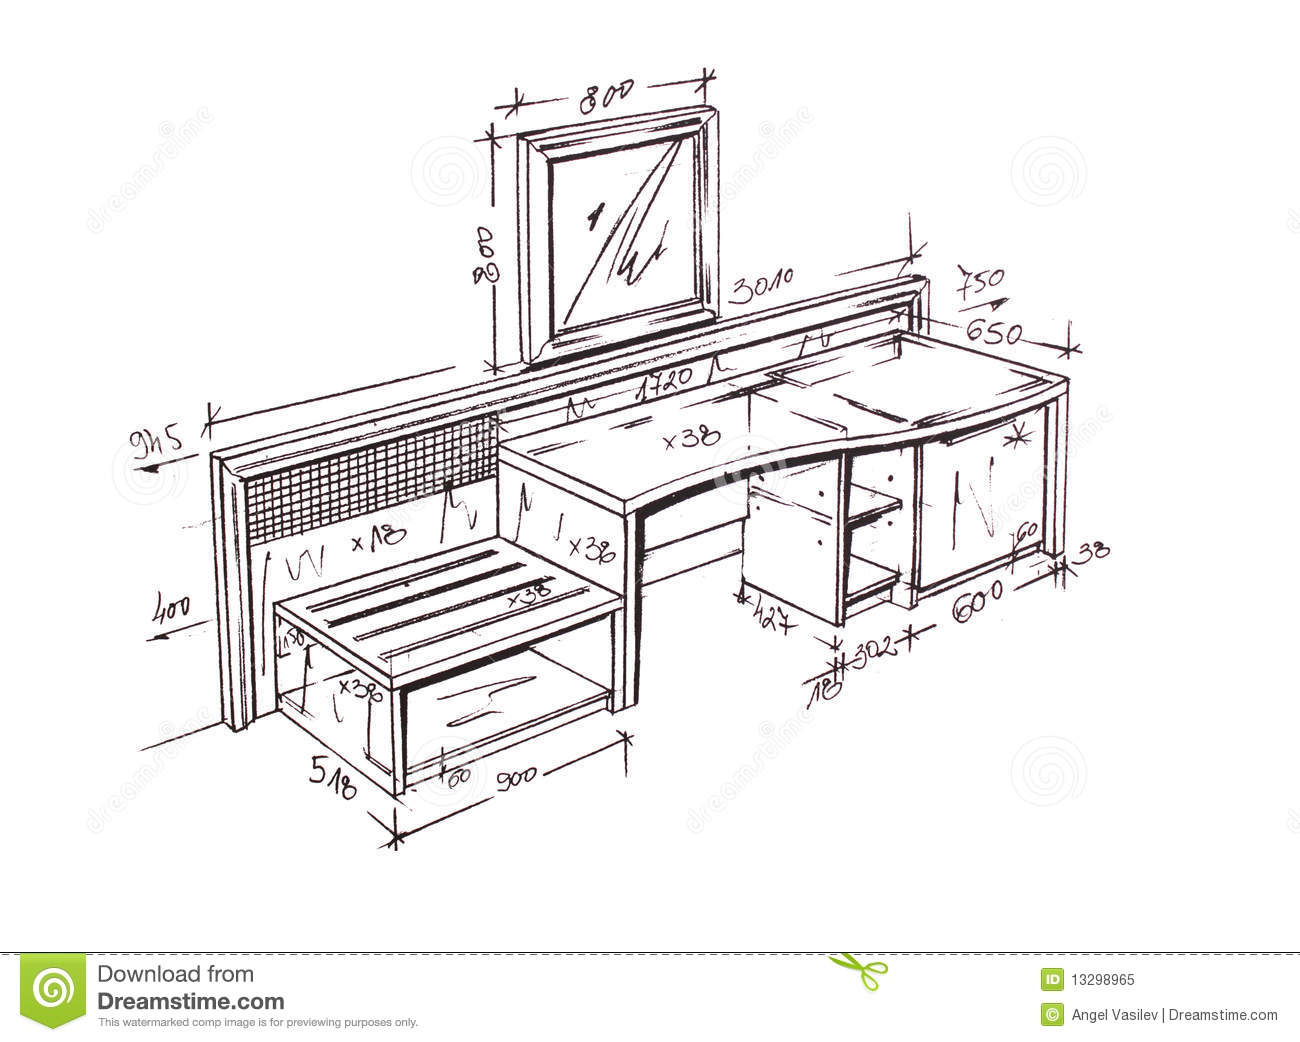 Furniture design drawings best interior designers for Drawing room furniture designs